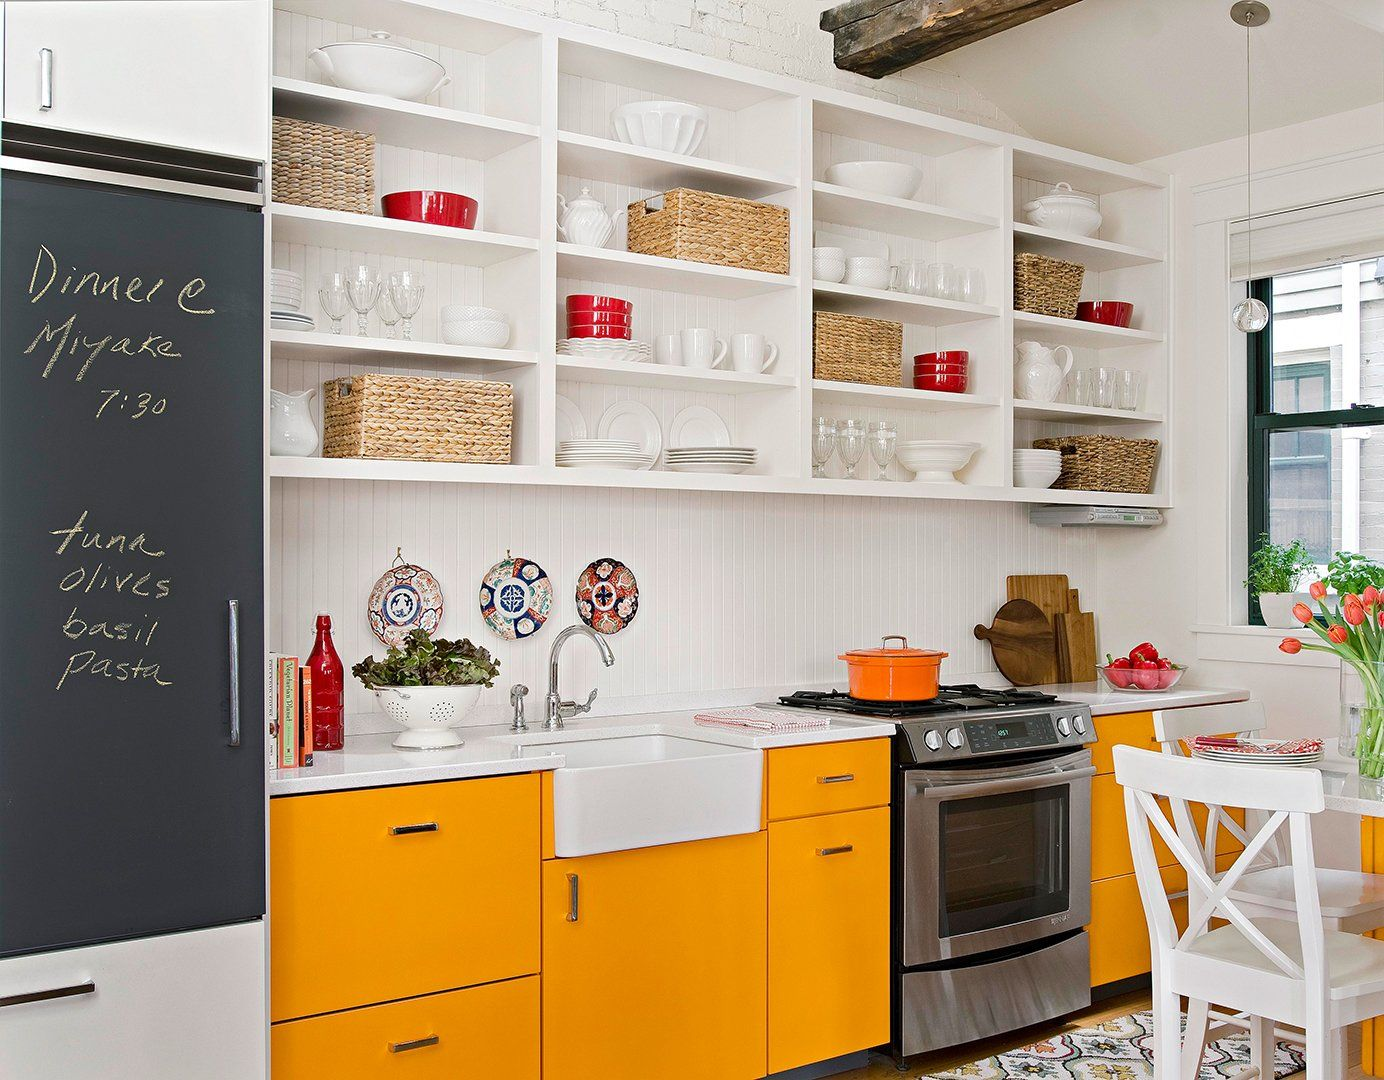 22 Mini Remodels That Make A Huge Impact In 2020 Kitchen Cabinets Color Combination Kitchen Cabinet Colors Kitchen Renovation